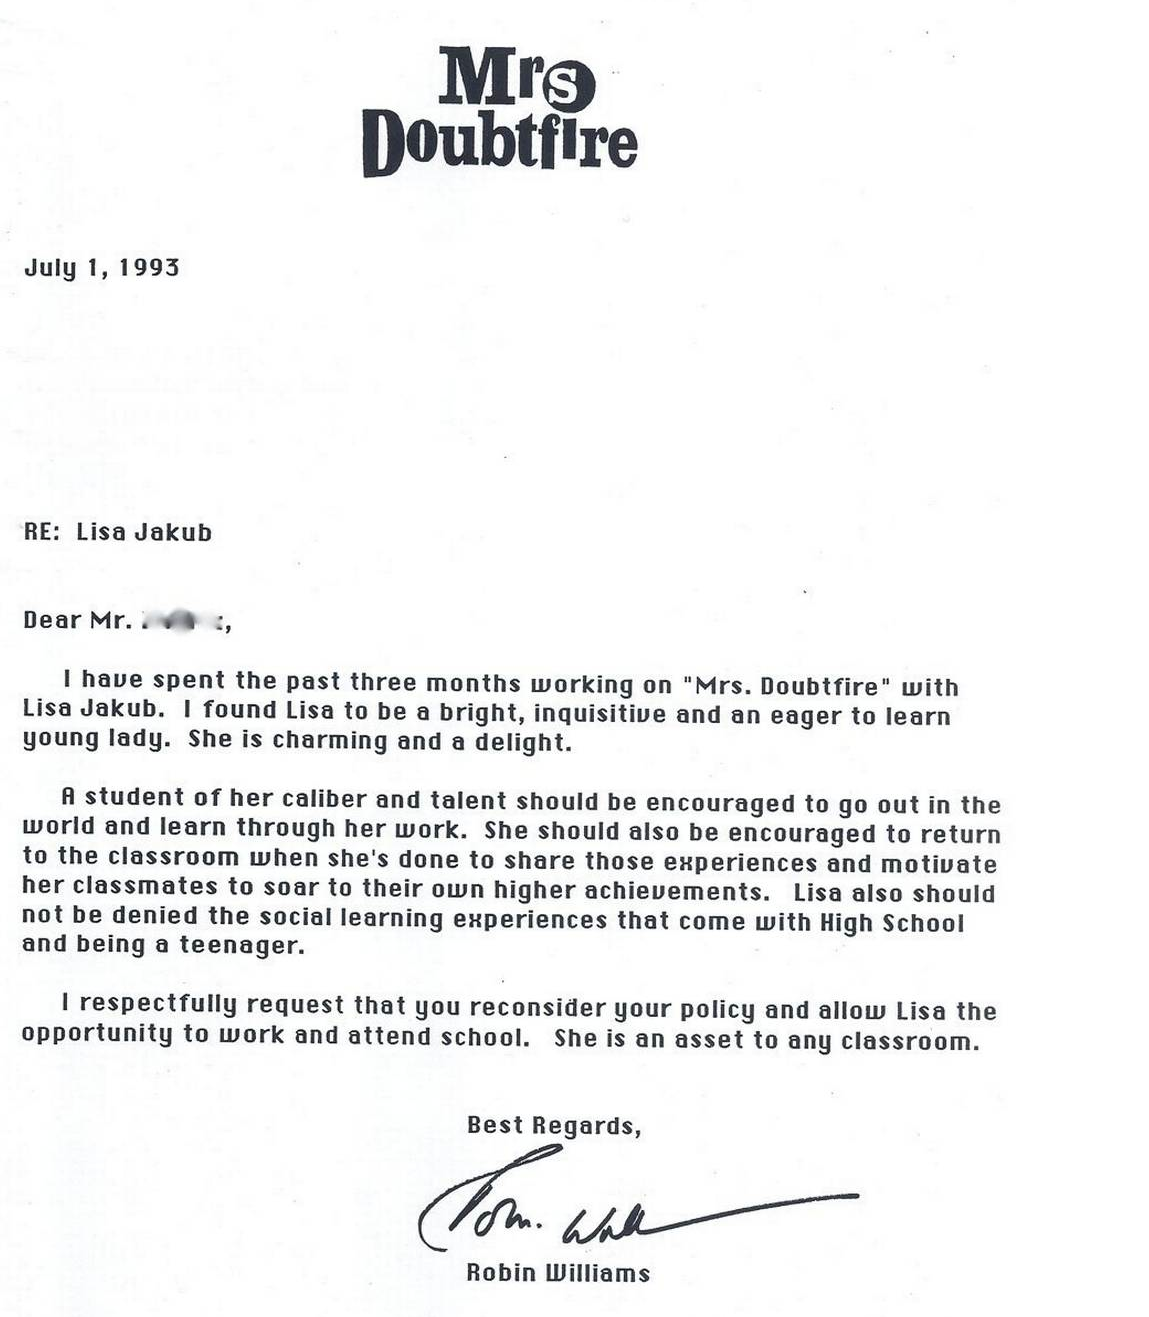 Darren Rovell On Twitter Robin Williams Wrote This